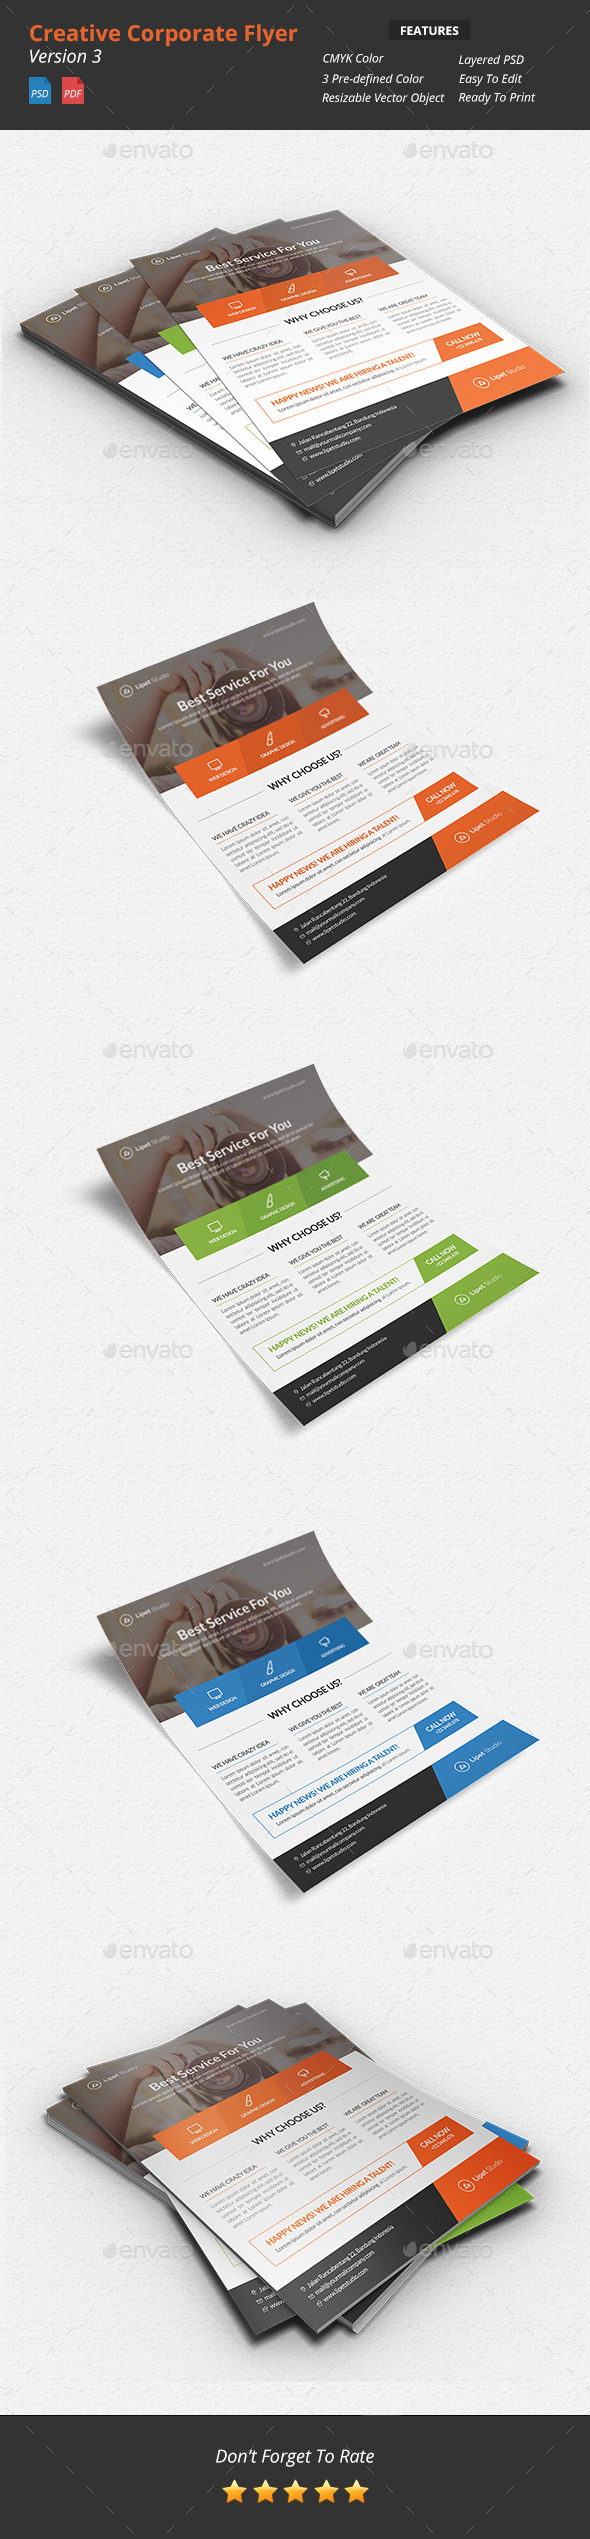 GraphicRiver Creative Corporate Flyer v3 9637302